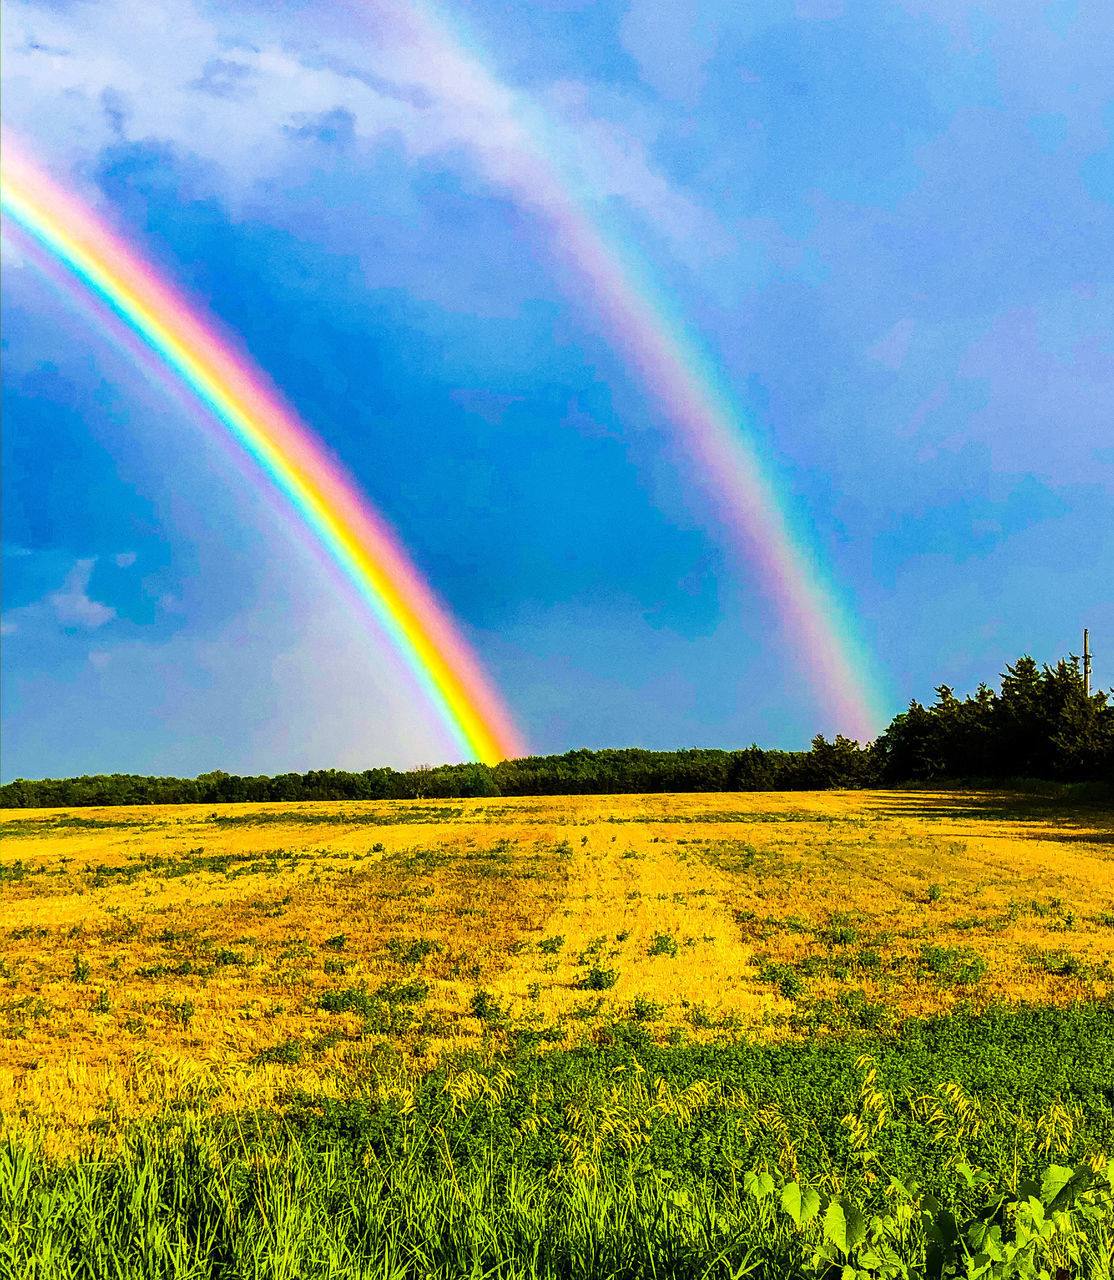 SCENIC VIEW OF RAINBOW OVER LAND FIELD AGAINST SKY